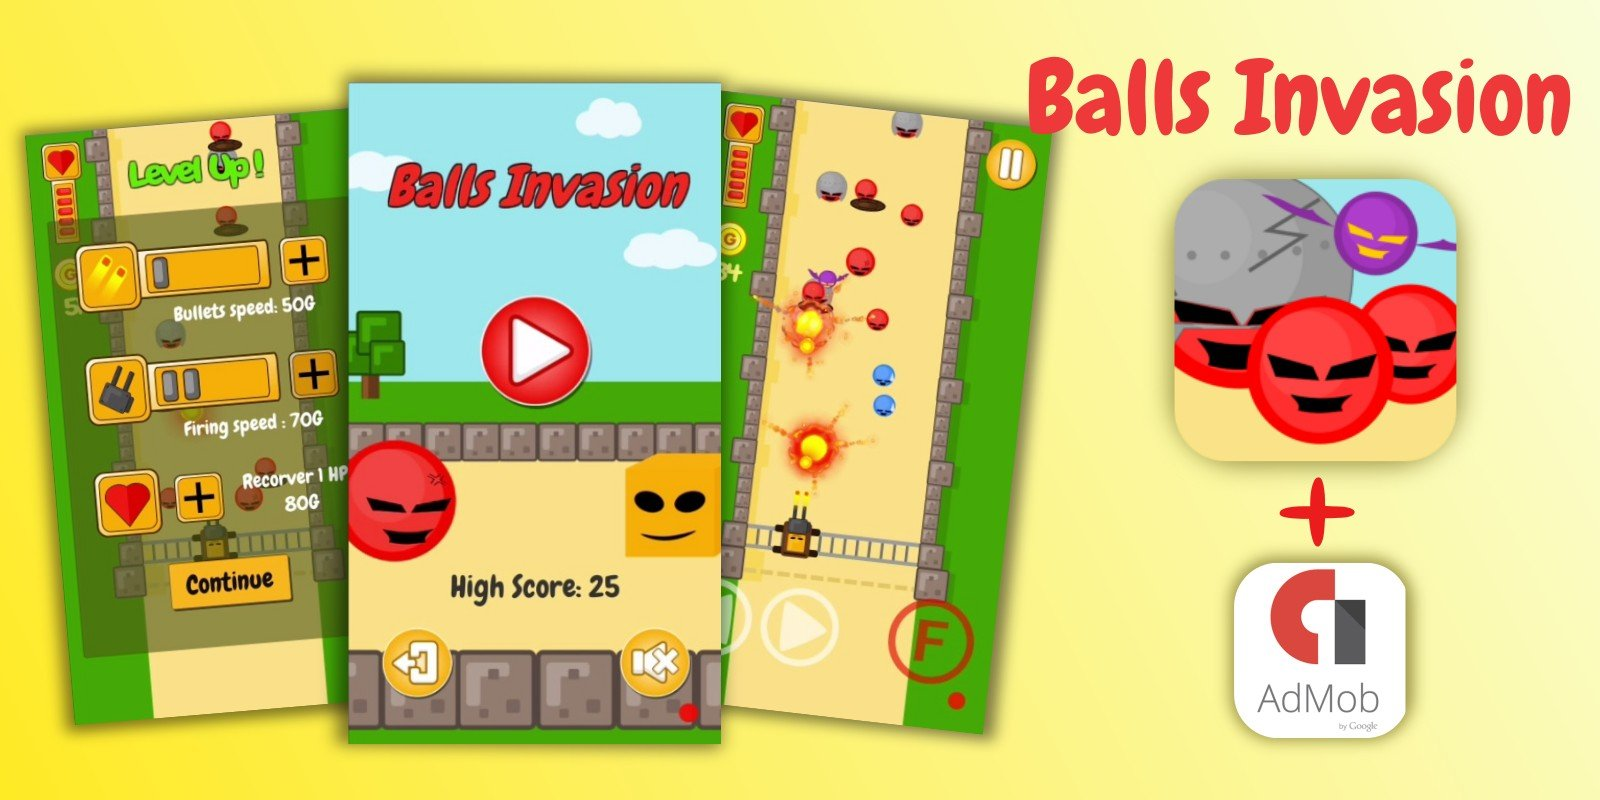 Balls Invasion - Unity game source code